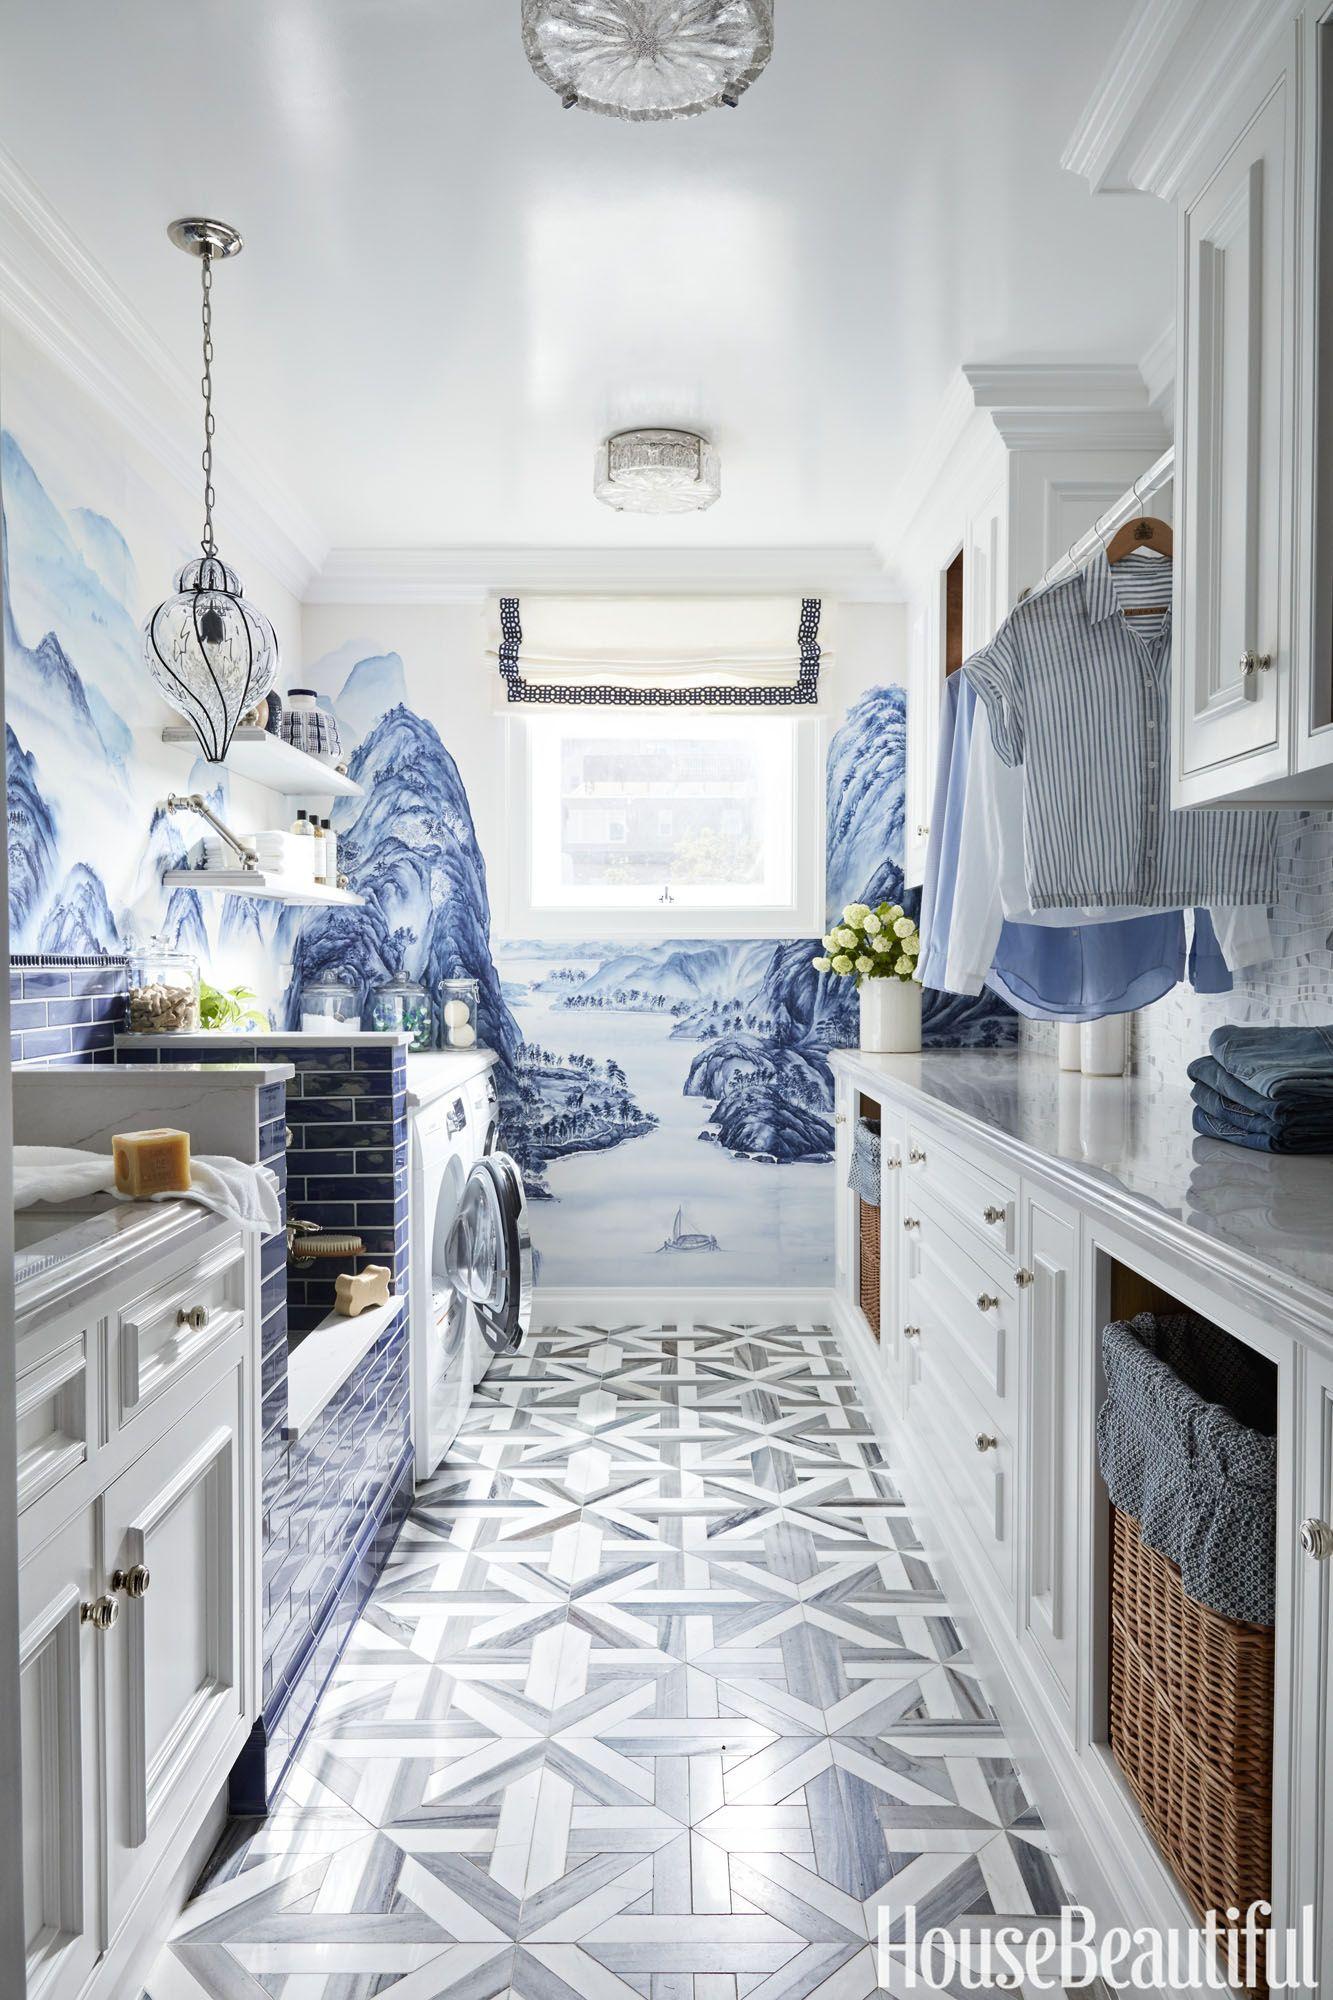 Kohler Shower Lighting Laundry Room Inspiration - Dog Shower Ideas